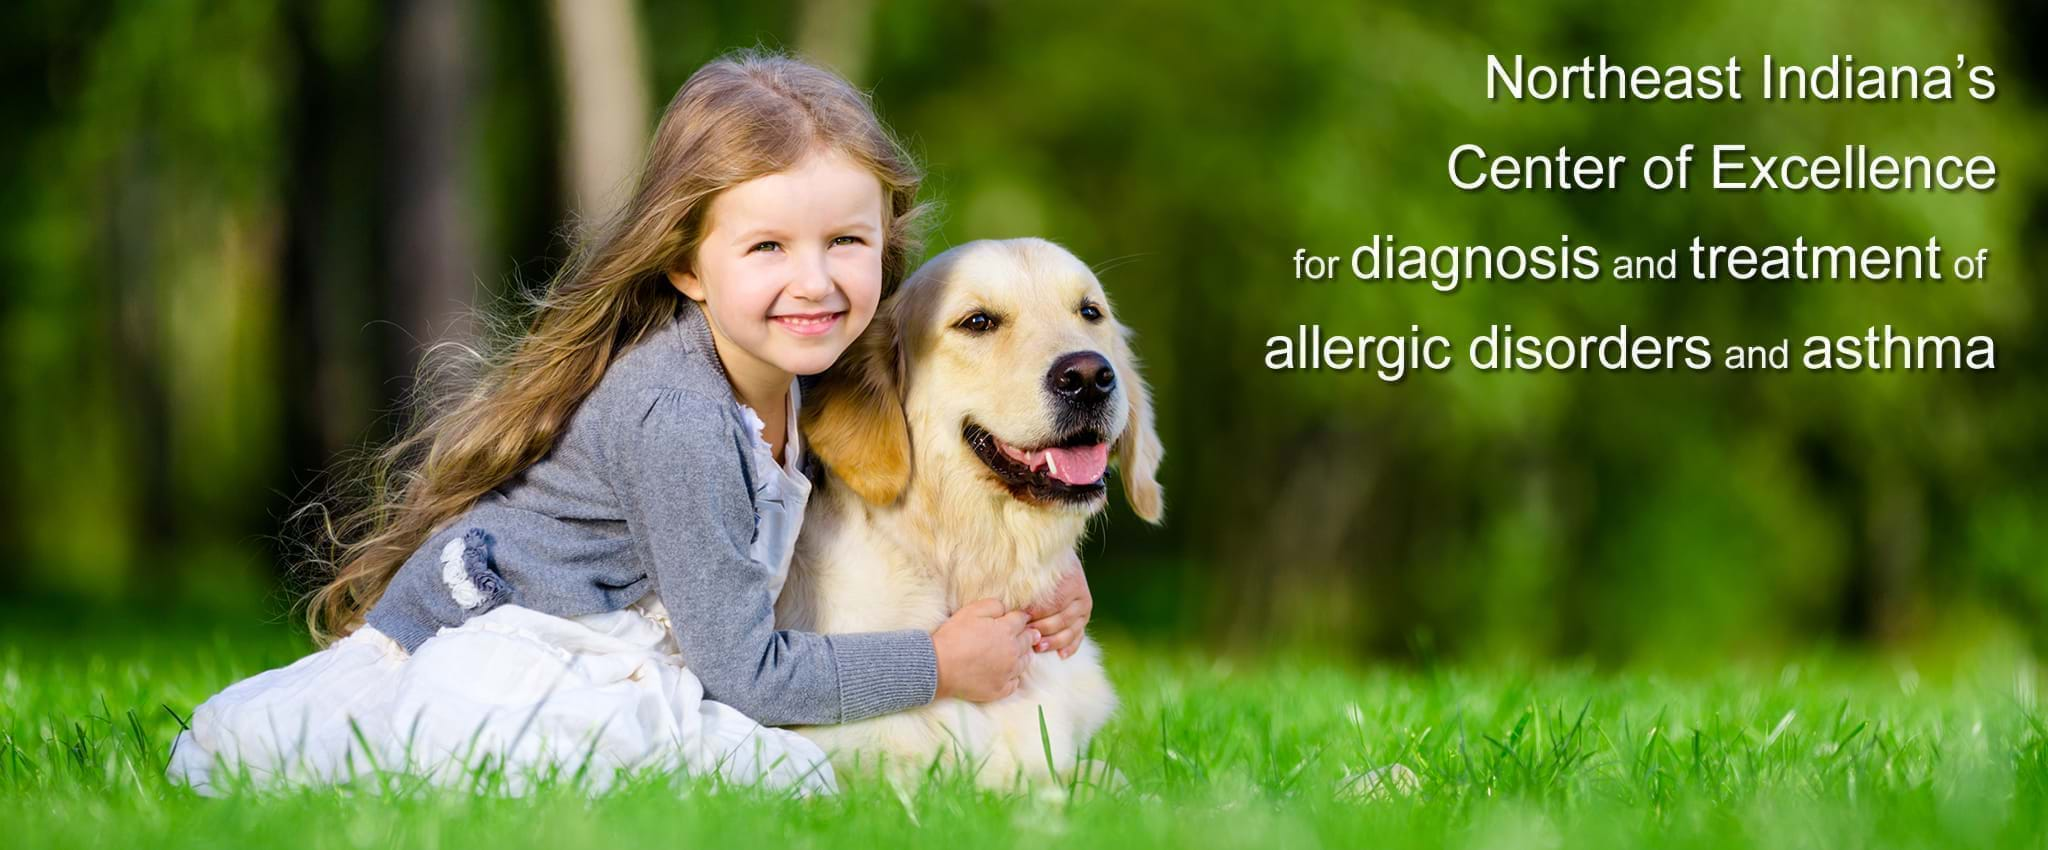 Northeast Indiana's Center of Excellence for diagnosis and treatment of allergic disorders and asthma